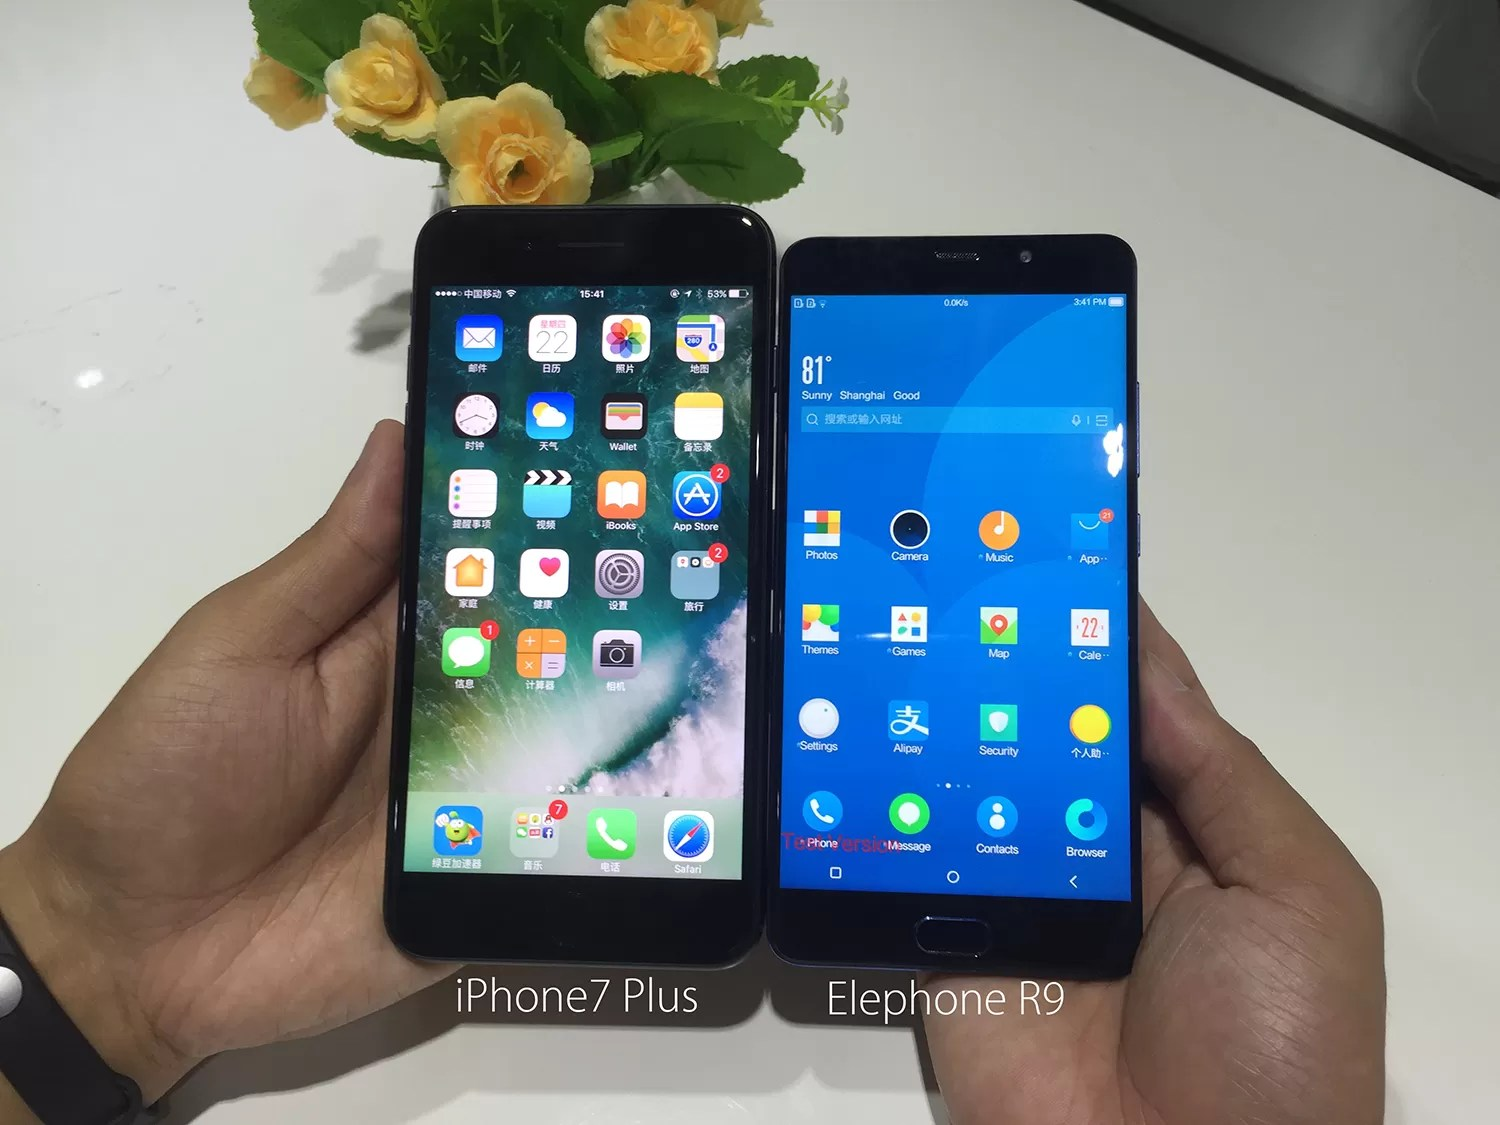 Iphone Misure Elephone R9 Elephone S7 E Iphone 7 Plus Le Dimensioni A